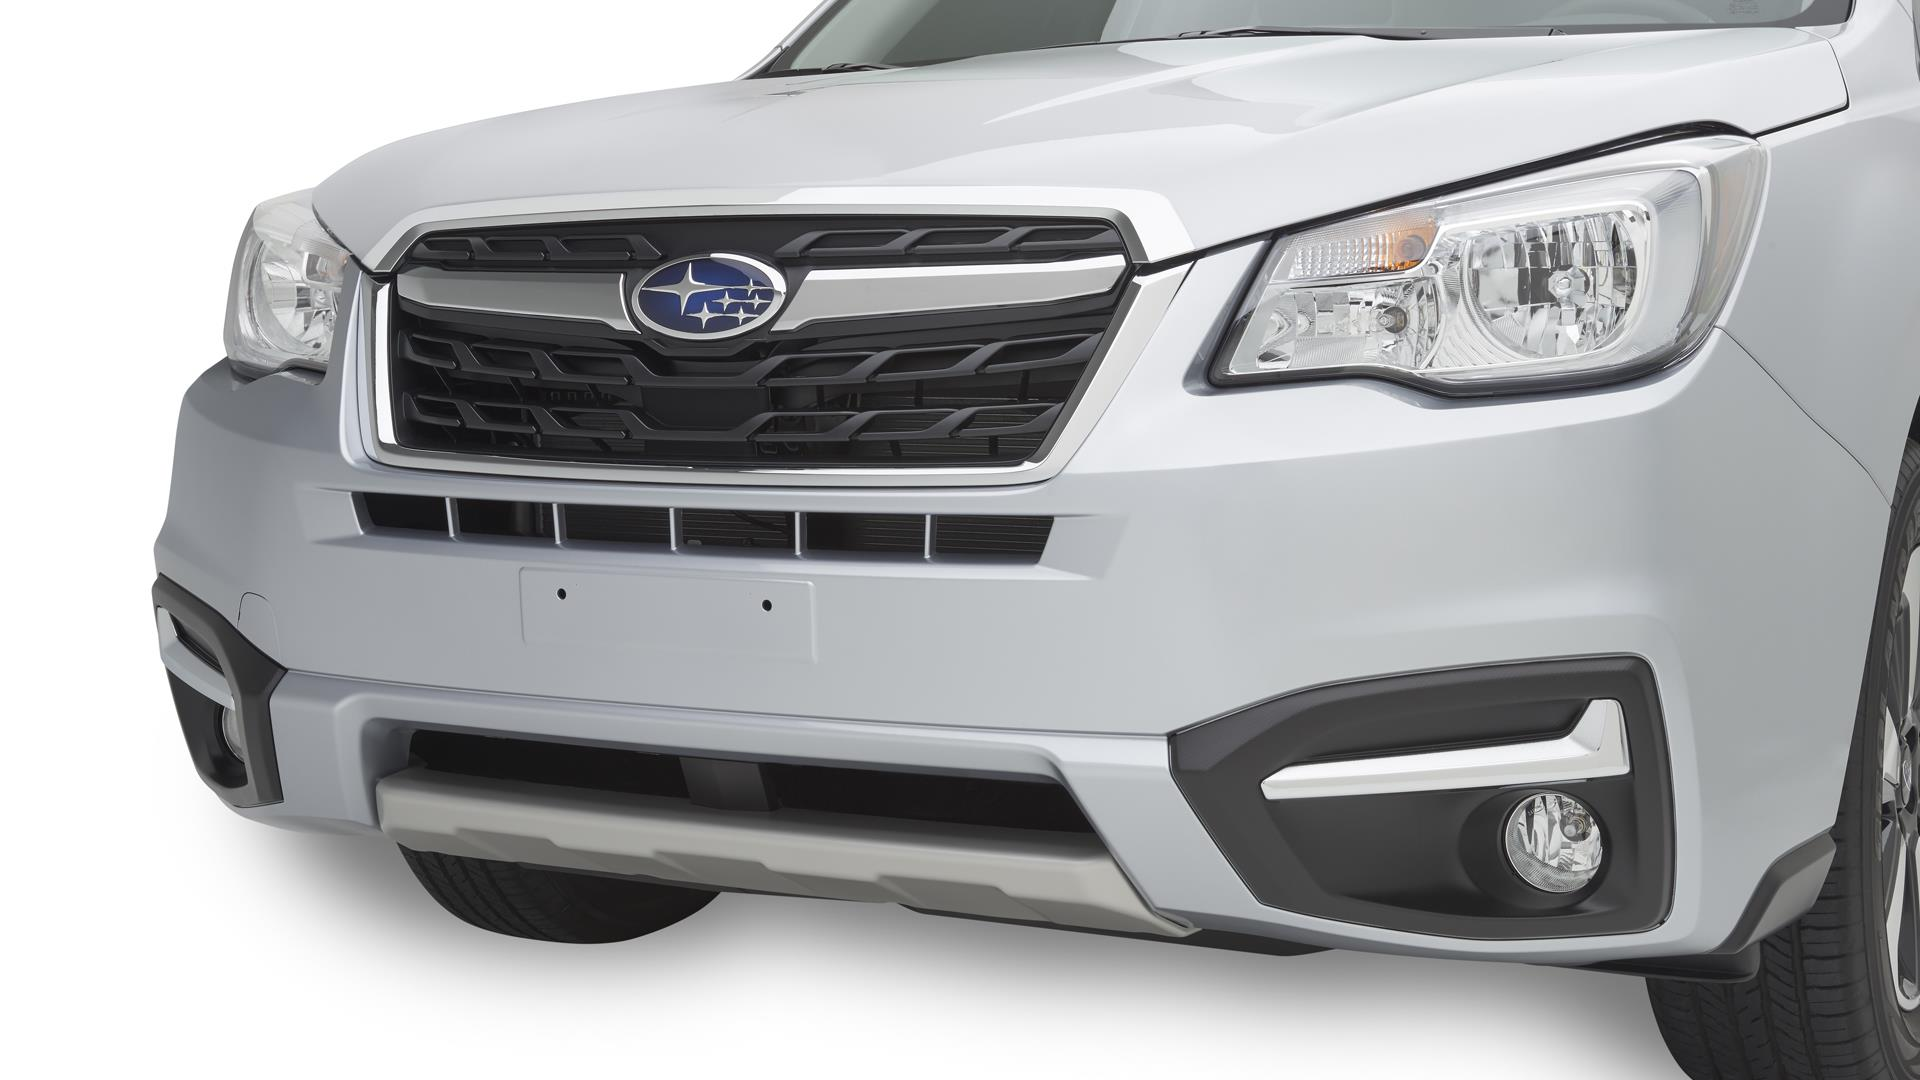 Shop Genuine 2018 Subaru Forester Accessories From